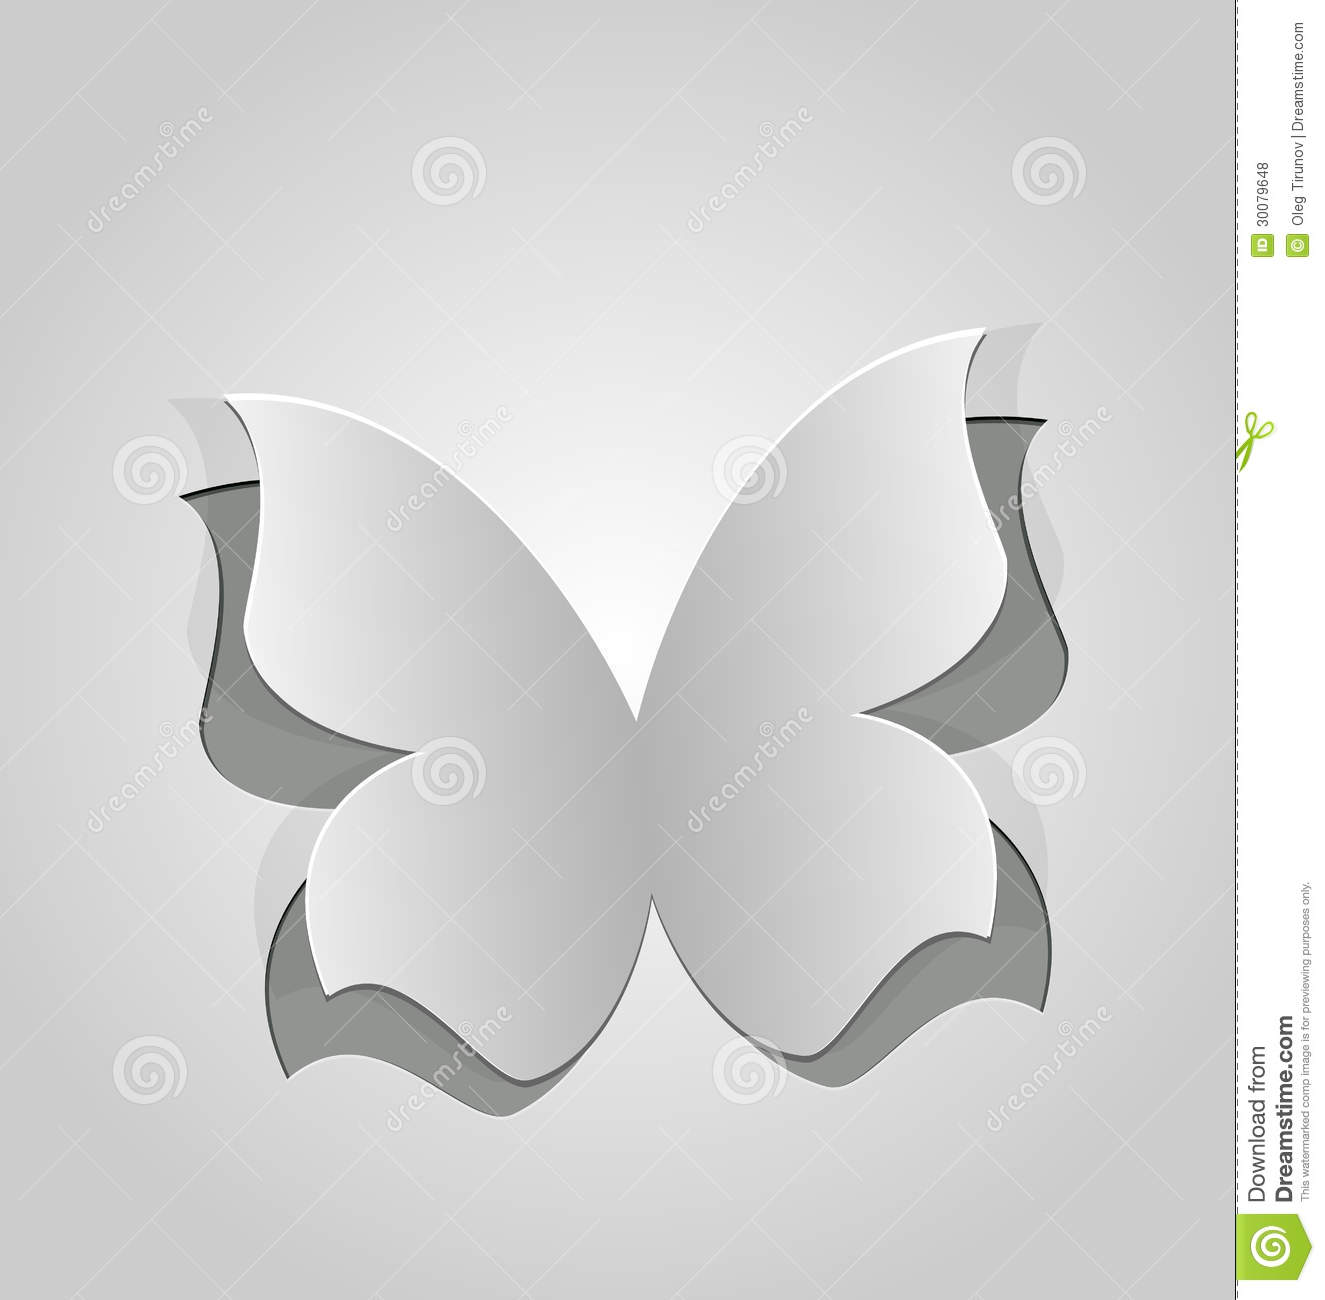 butterfly paper cut out template - cut out butterfly grey paper royalty free stock photos